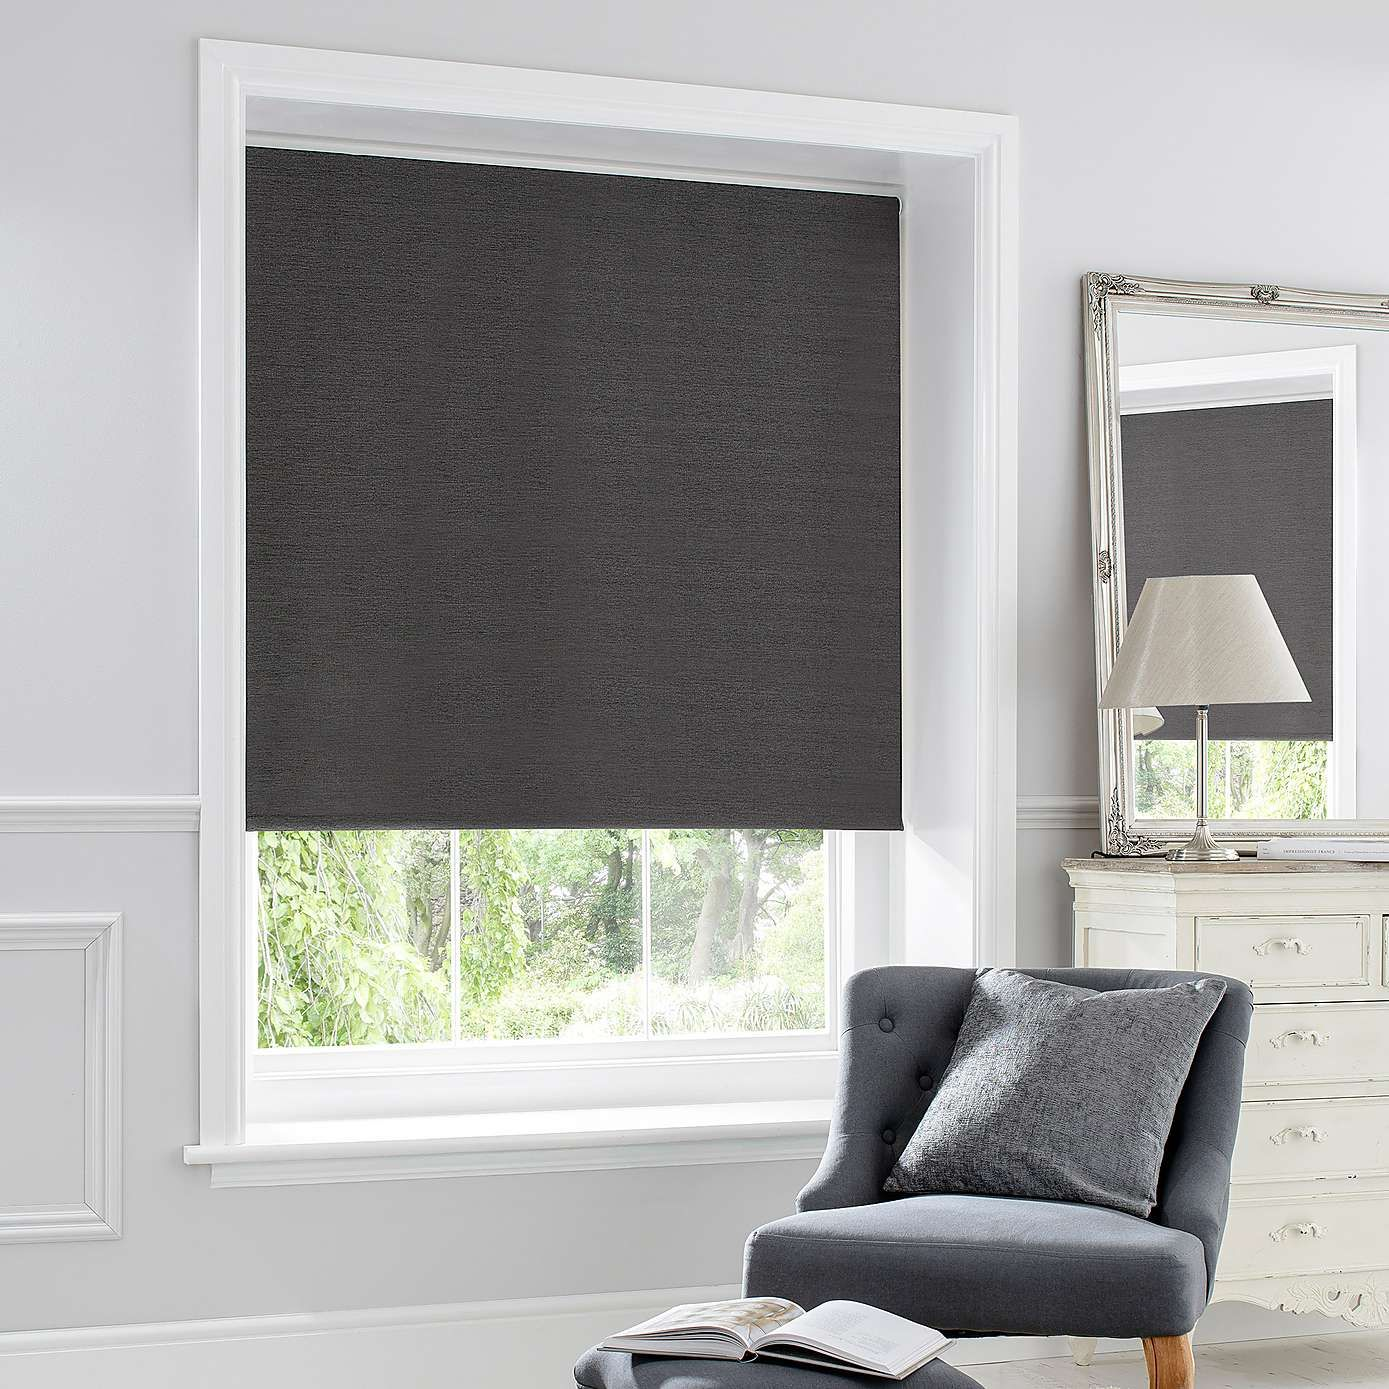 blind roman cheapest calico blinds uk steel grey shop puriti cheap ltd copy cotton donna